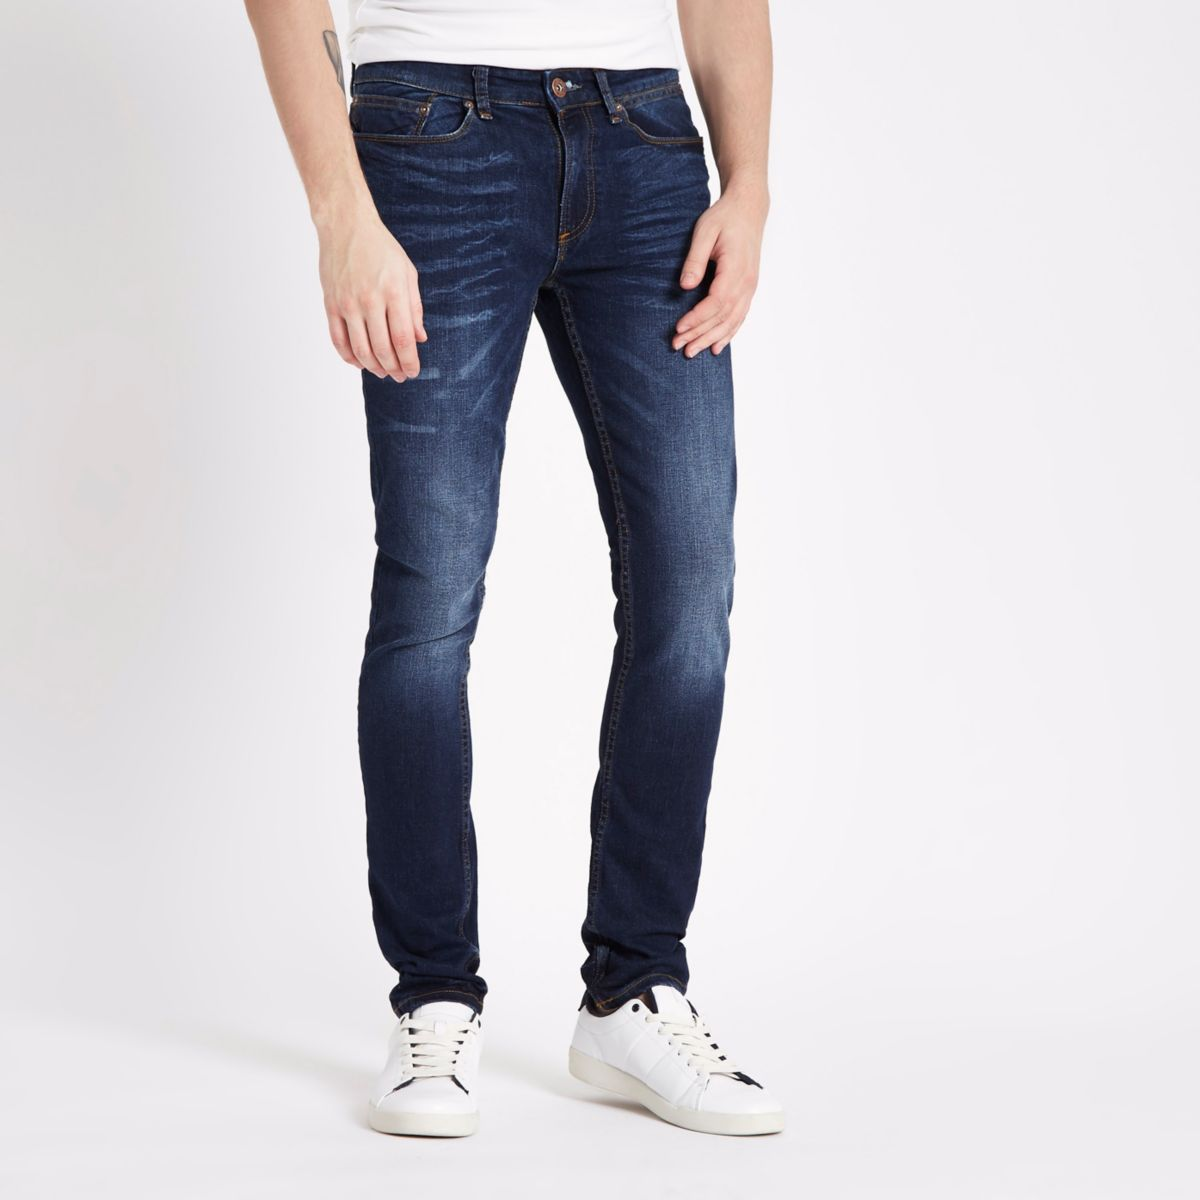 River Island Size Guide Mens Jeans